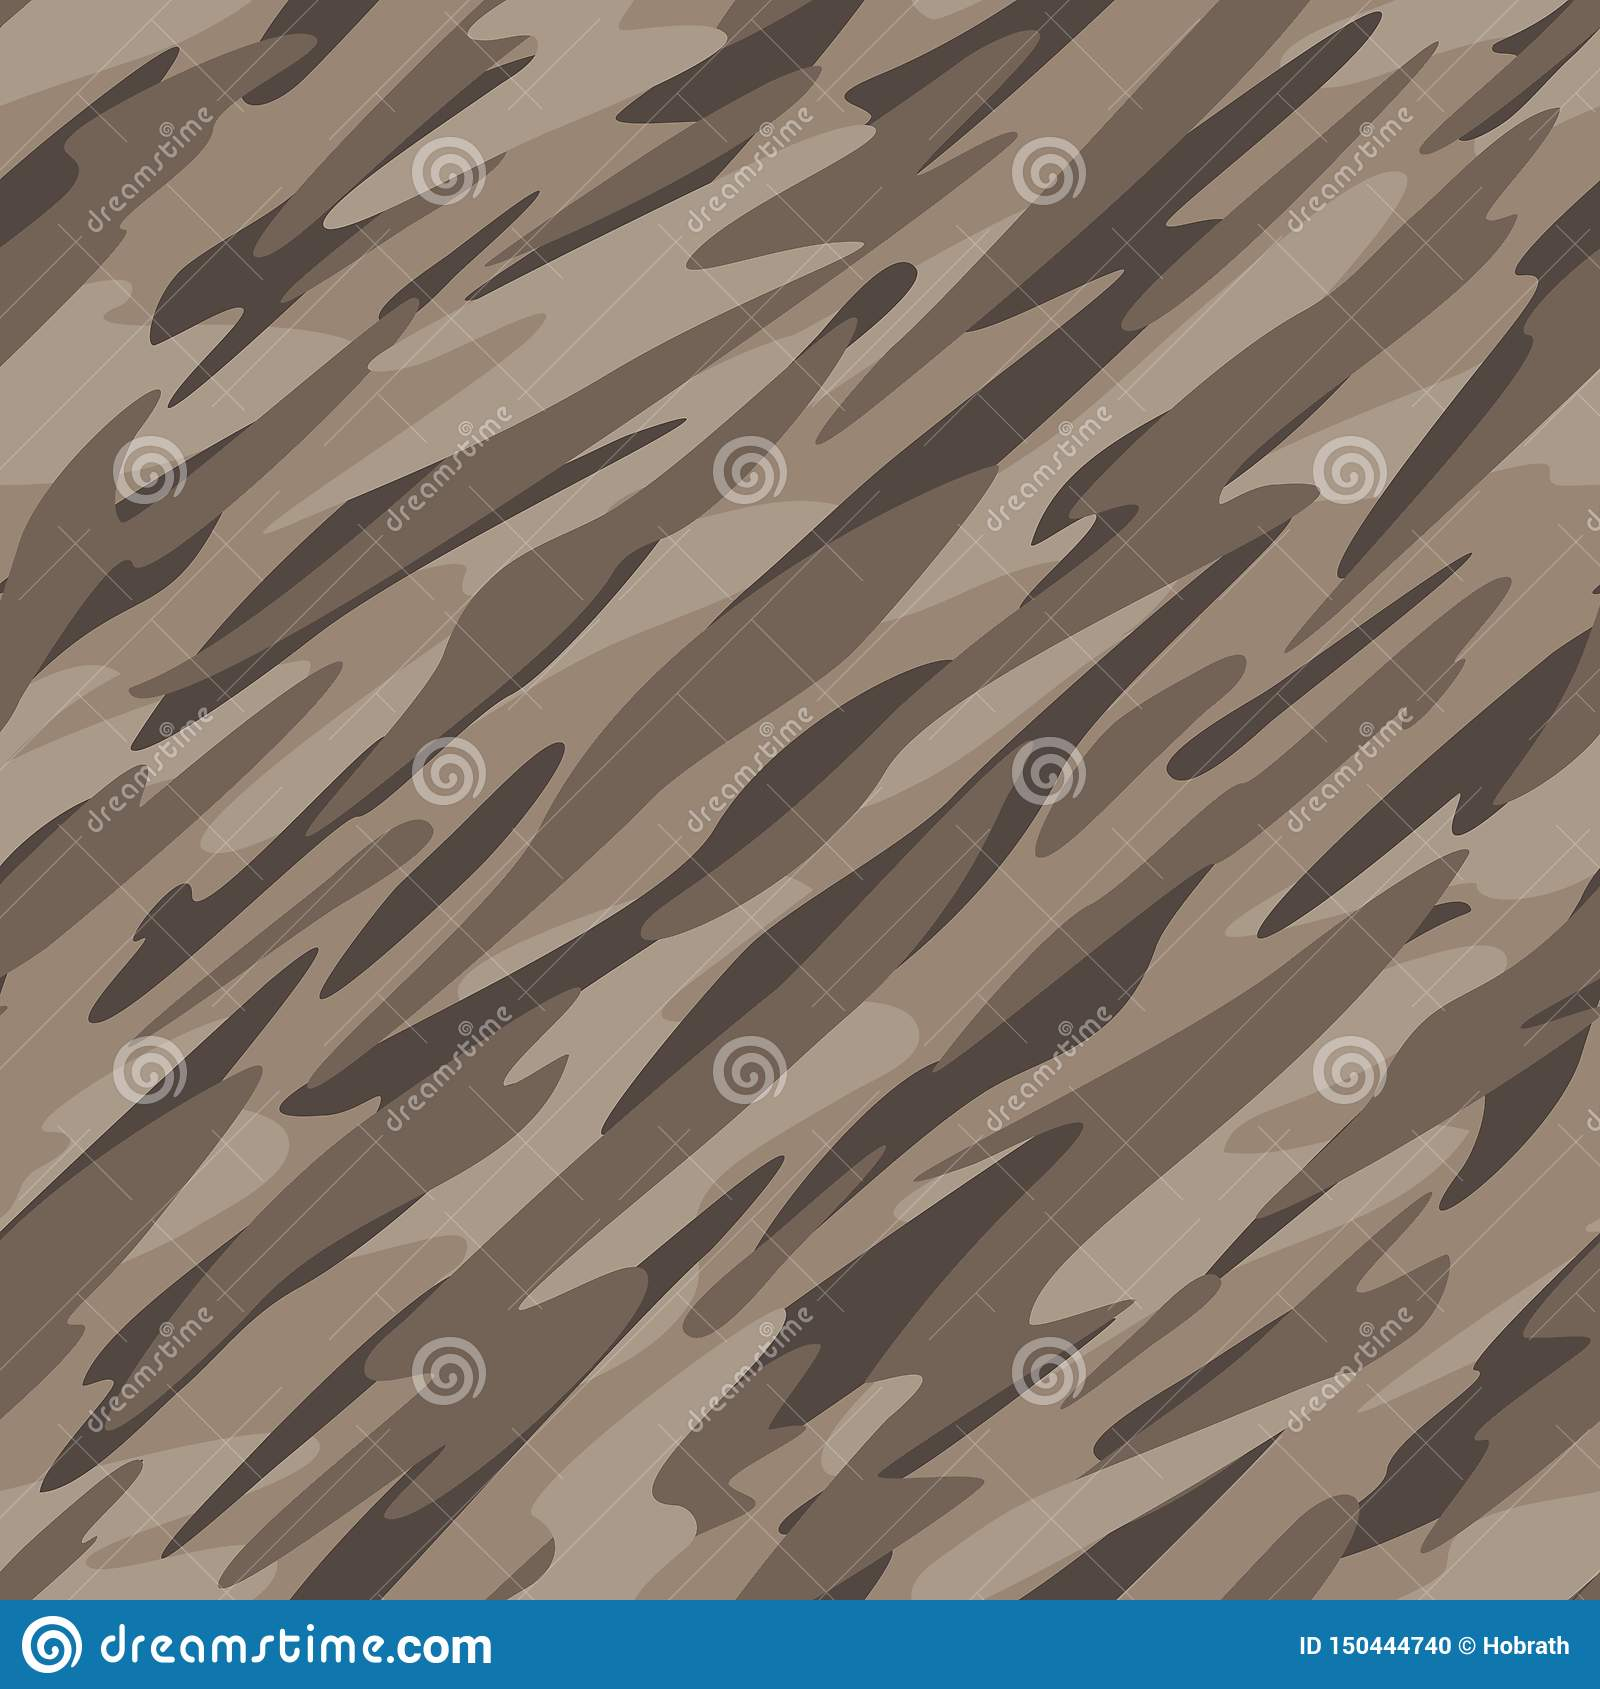 Desert Camouflage Abstract Seamless Repeating Pattern Vector Illustration